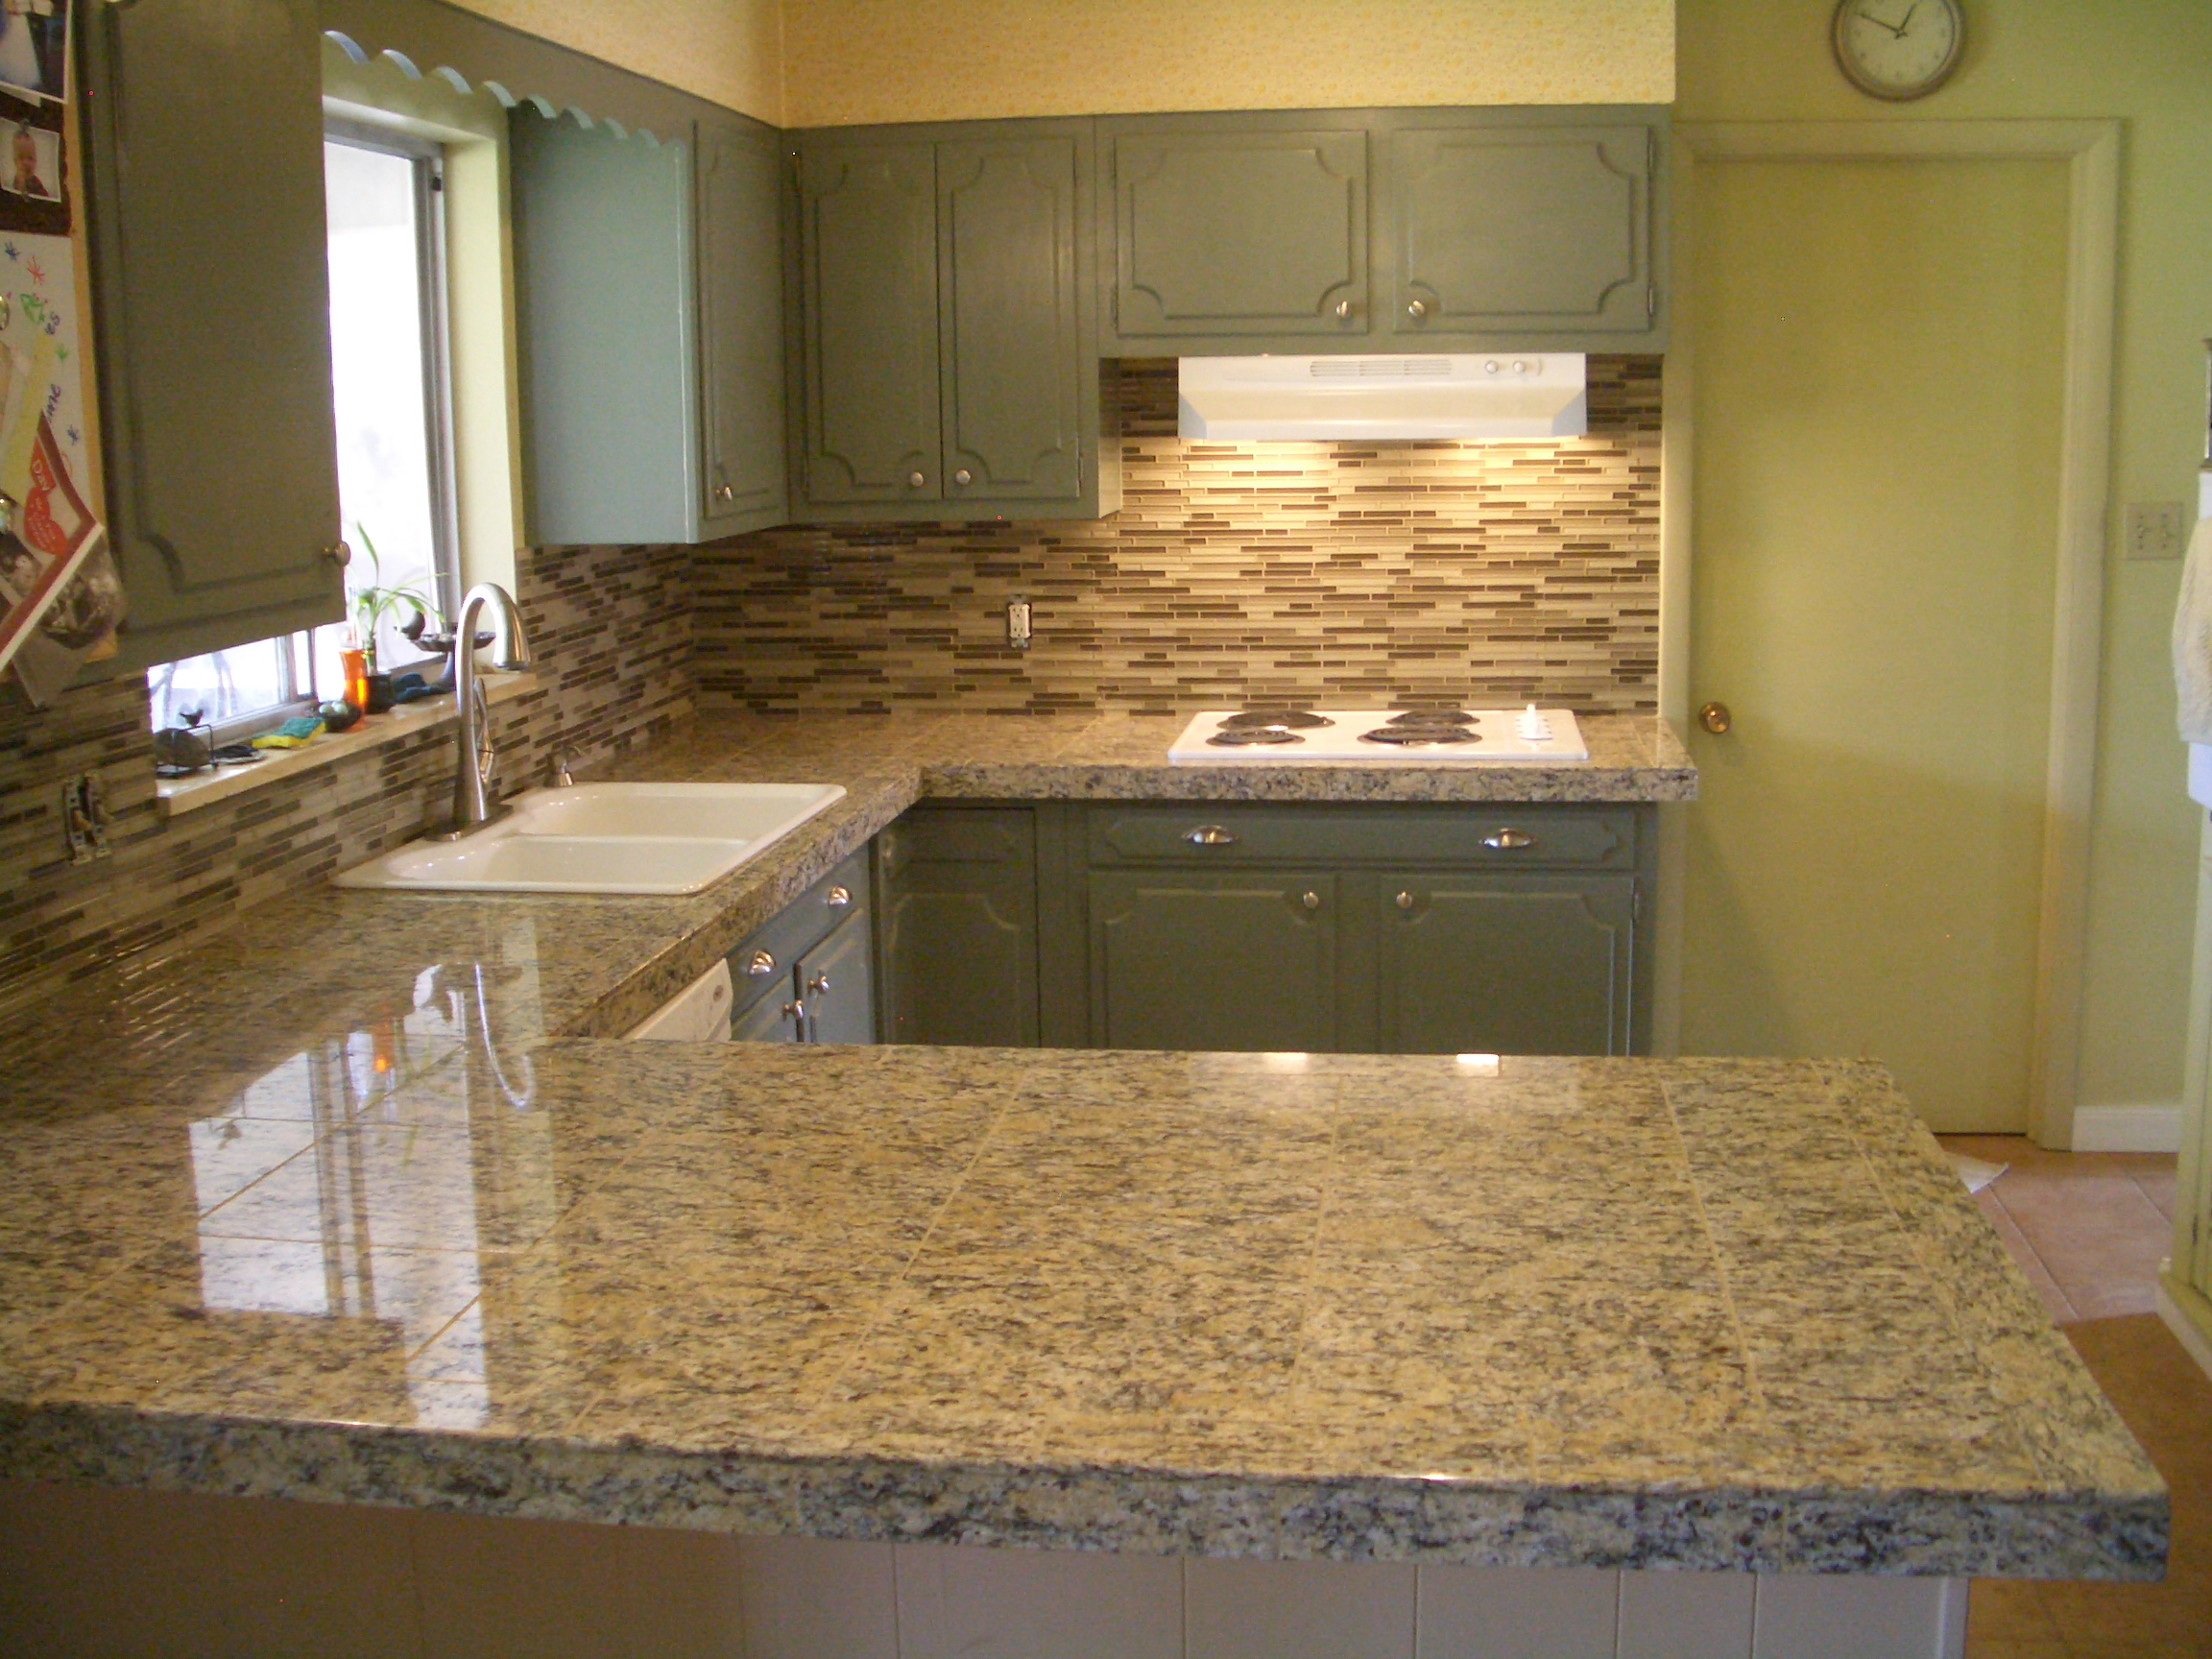 glass tile kitchen backsplash special glass tile kitchen backsplash Beige stack glass tile backsplash